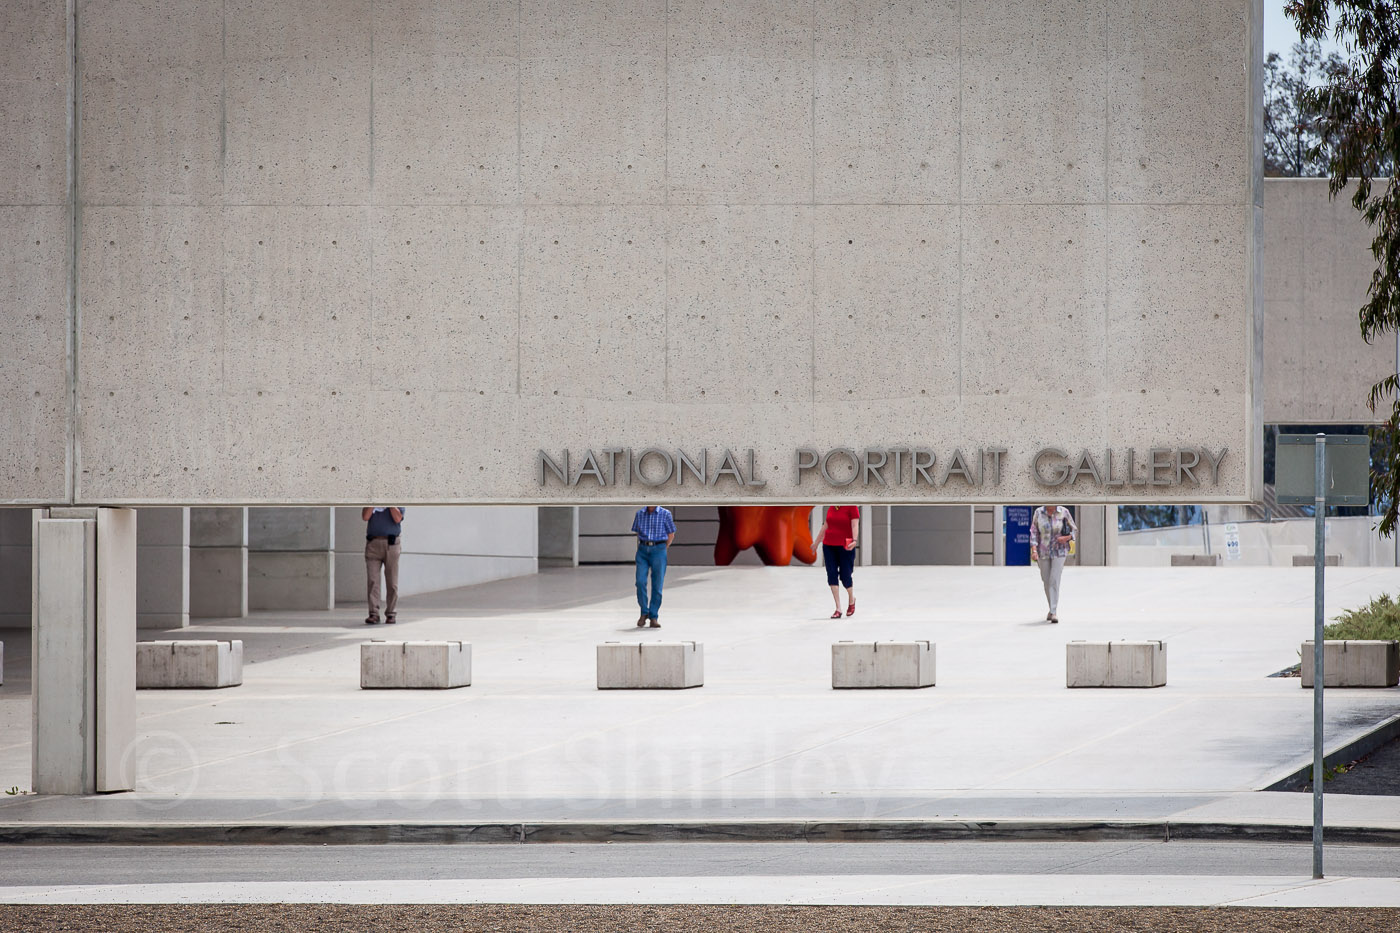 8274_national_portrait_gallery_canberra_architectural_photographer